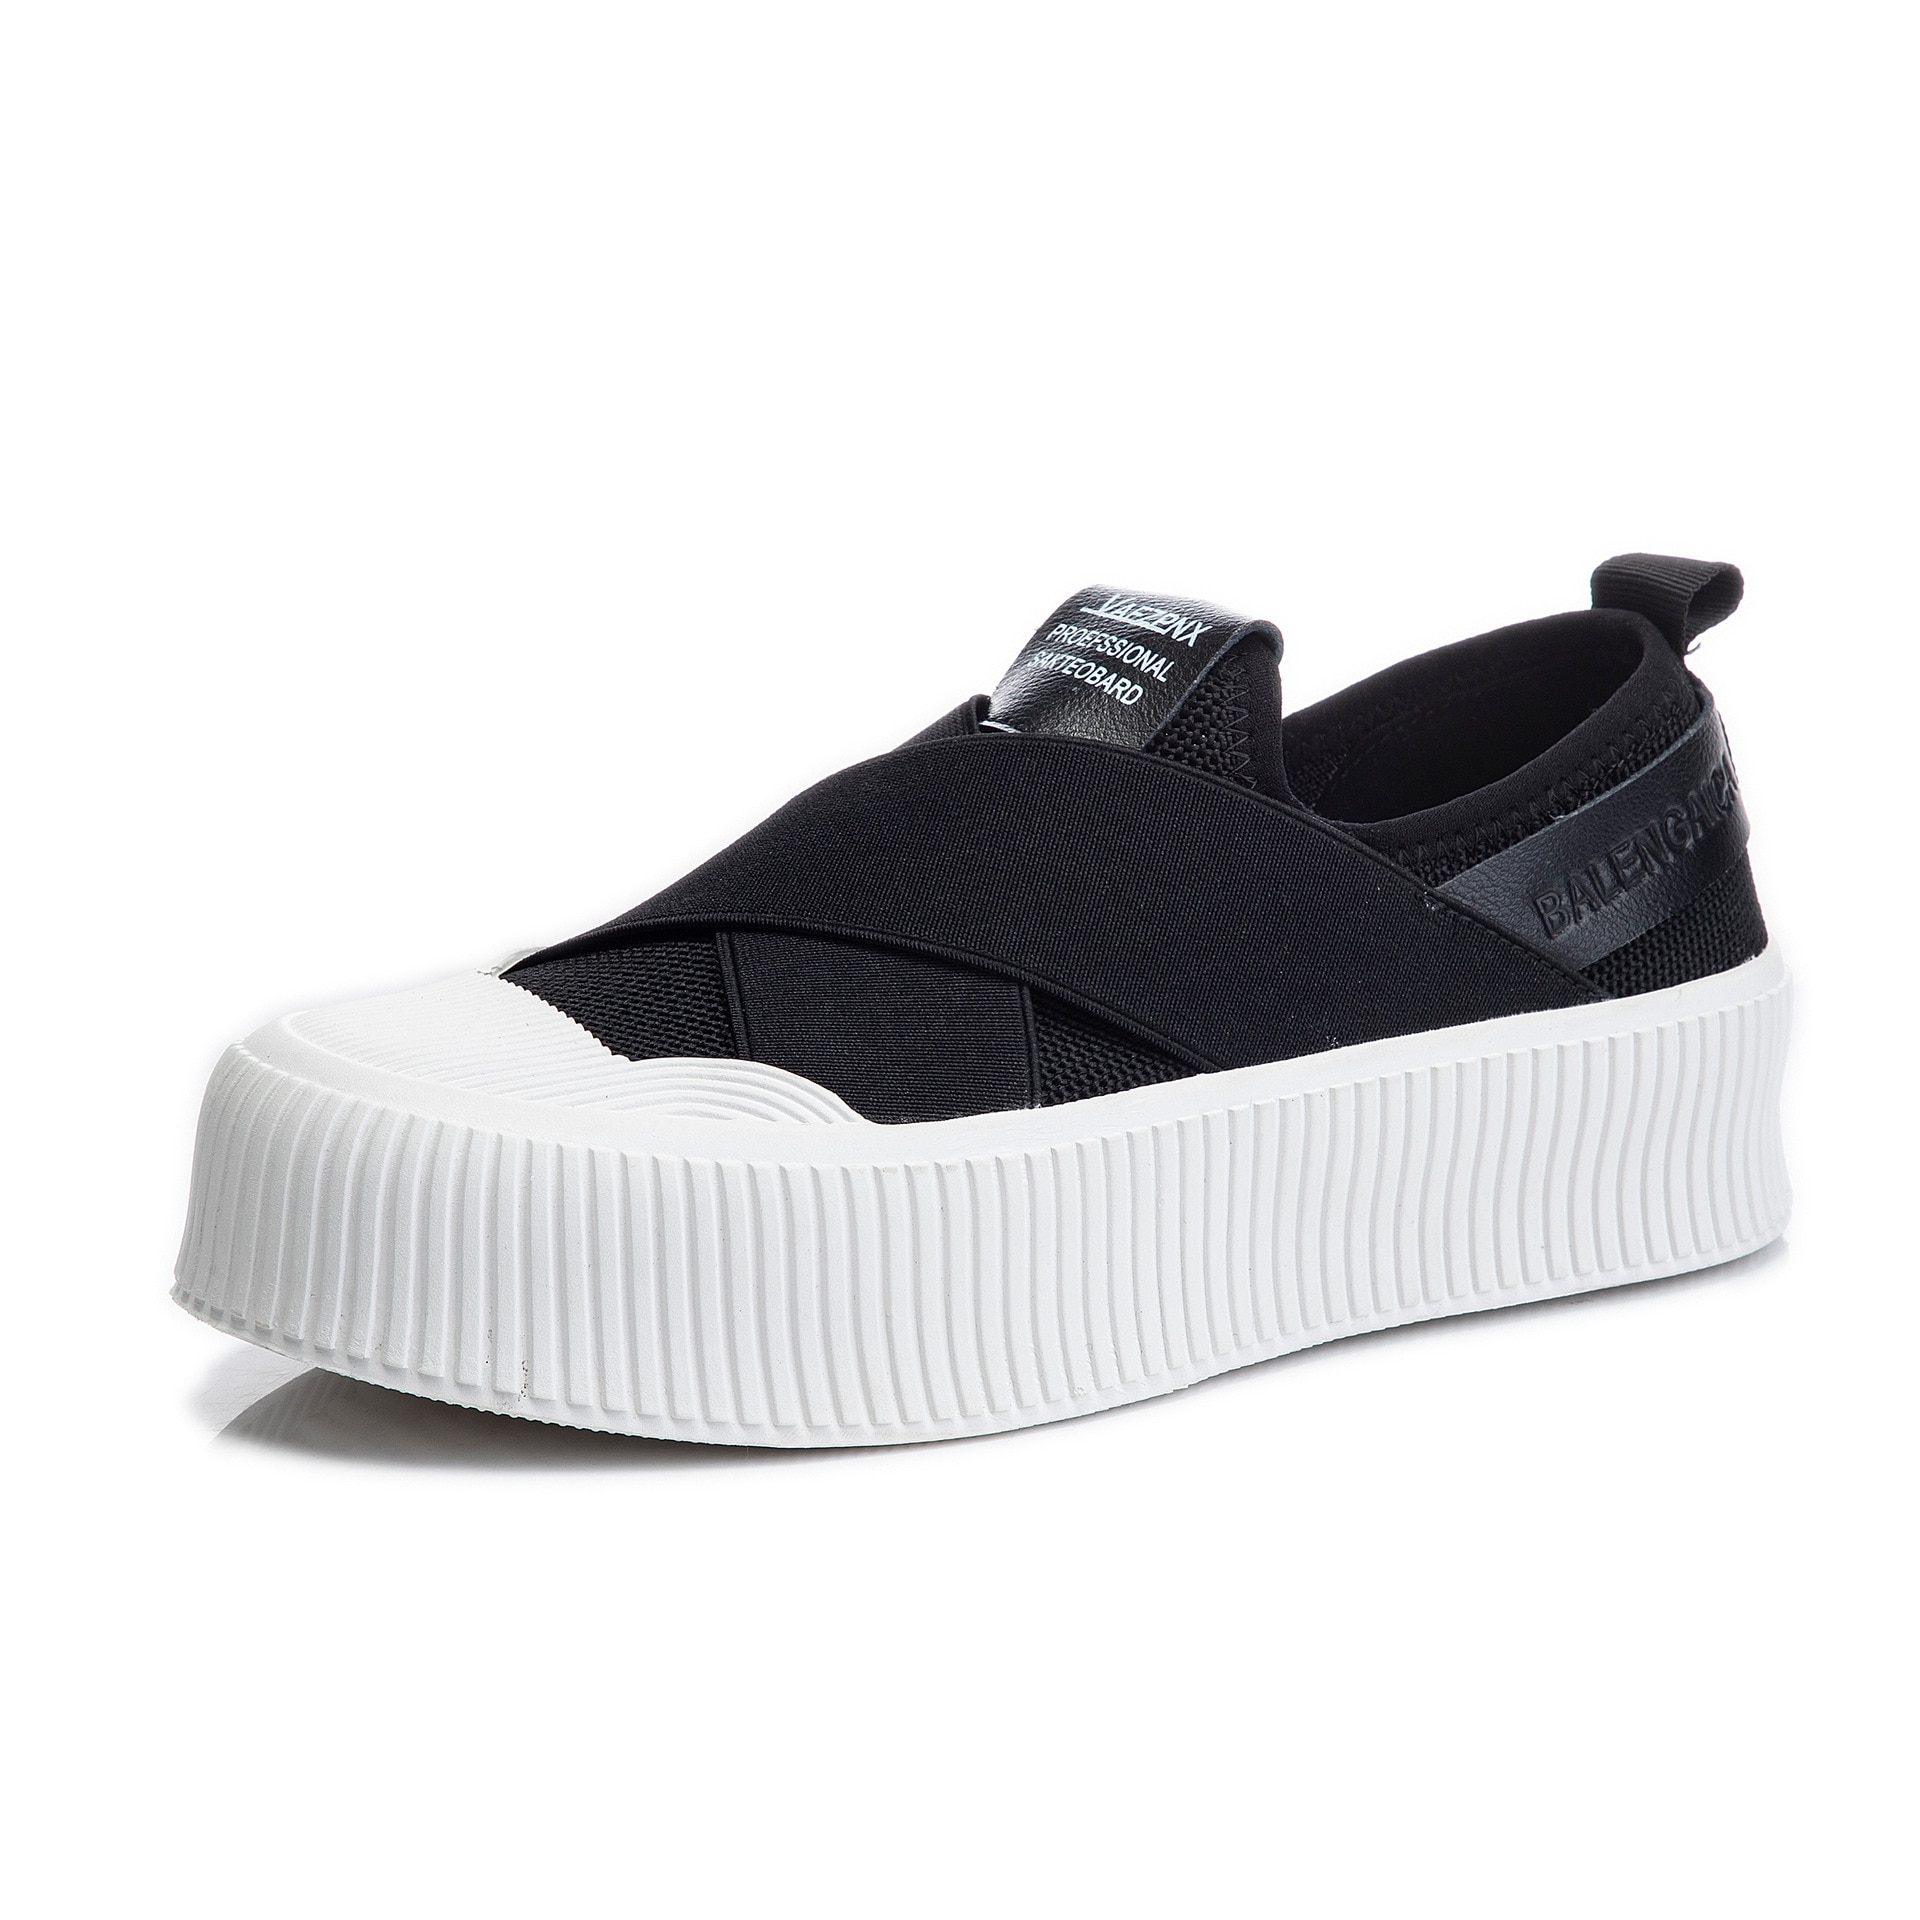 2021 Genuine Leather Summer Women Casual White Shoes Breathable Lightweight White Sneakers For Women Platform Vulcanized Shoes